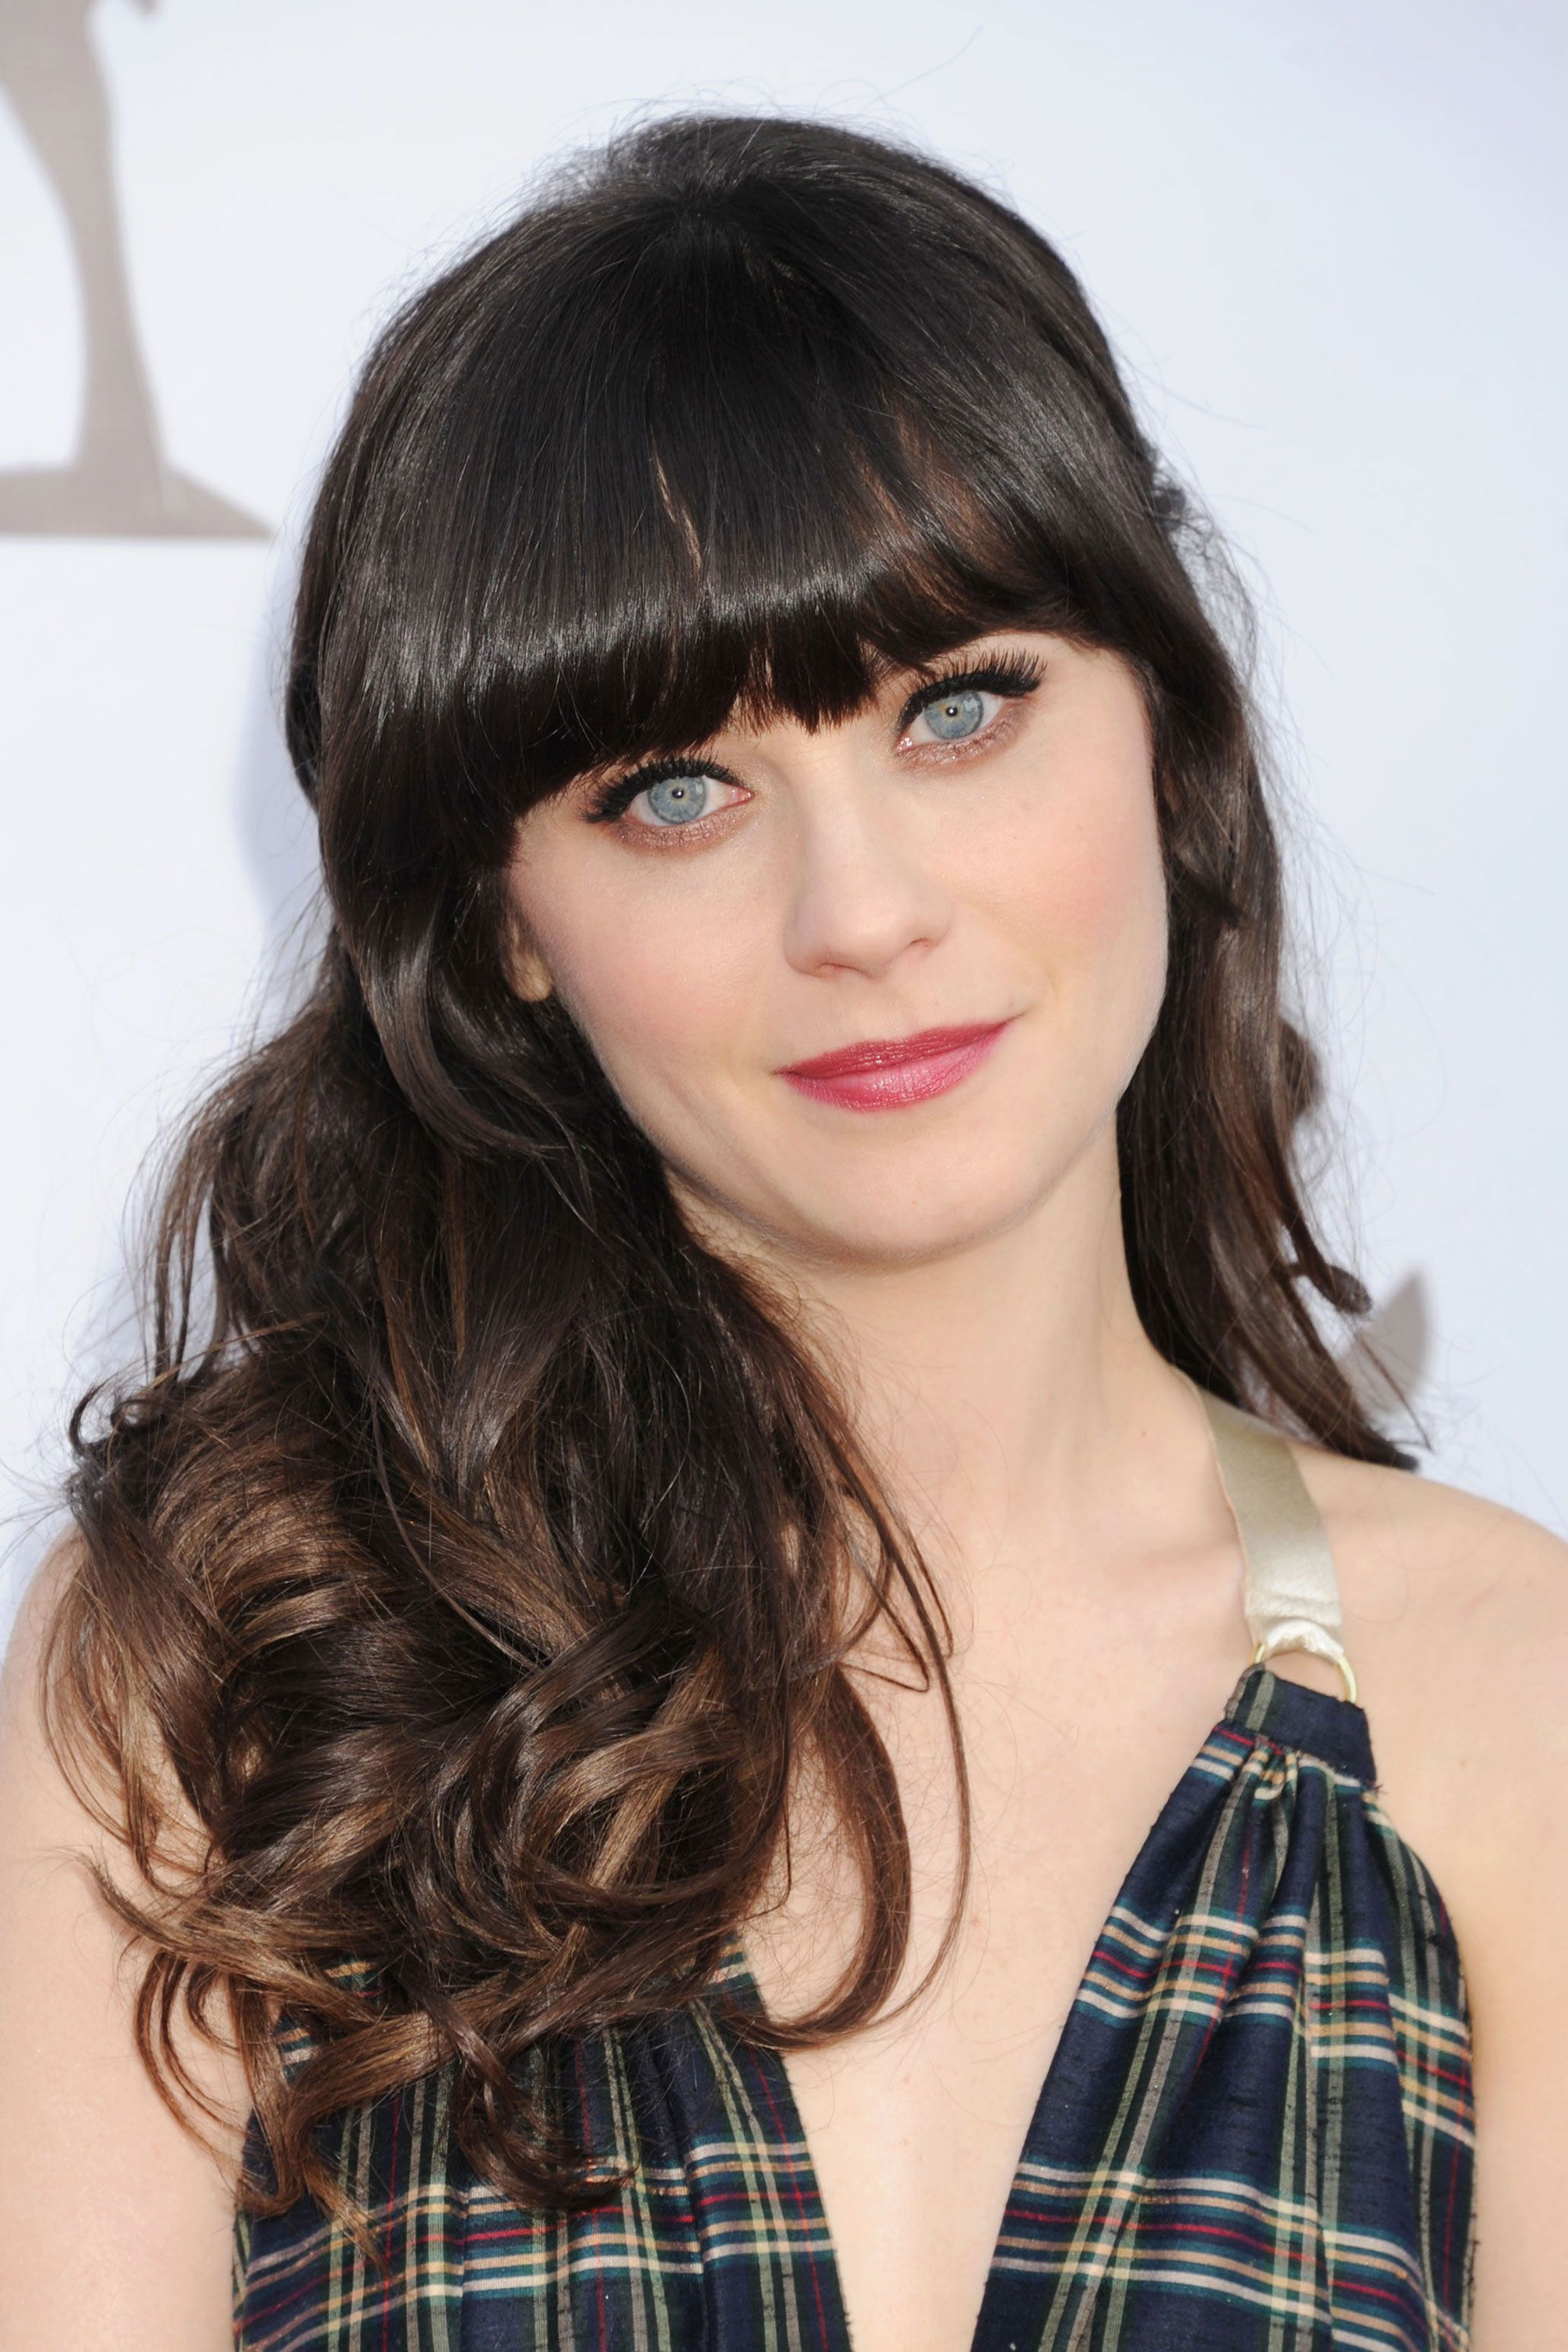 Give extra-long locks an instant update with freshly cropped fringe like Zooey Deschanel's. Tell your stylist to snip the center pieces so they fall right below your eyebrows, while the outer ones should be slightly longer. Getty Images -Cosmopolitan.com